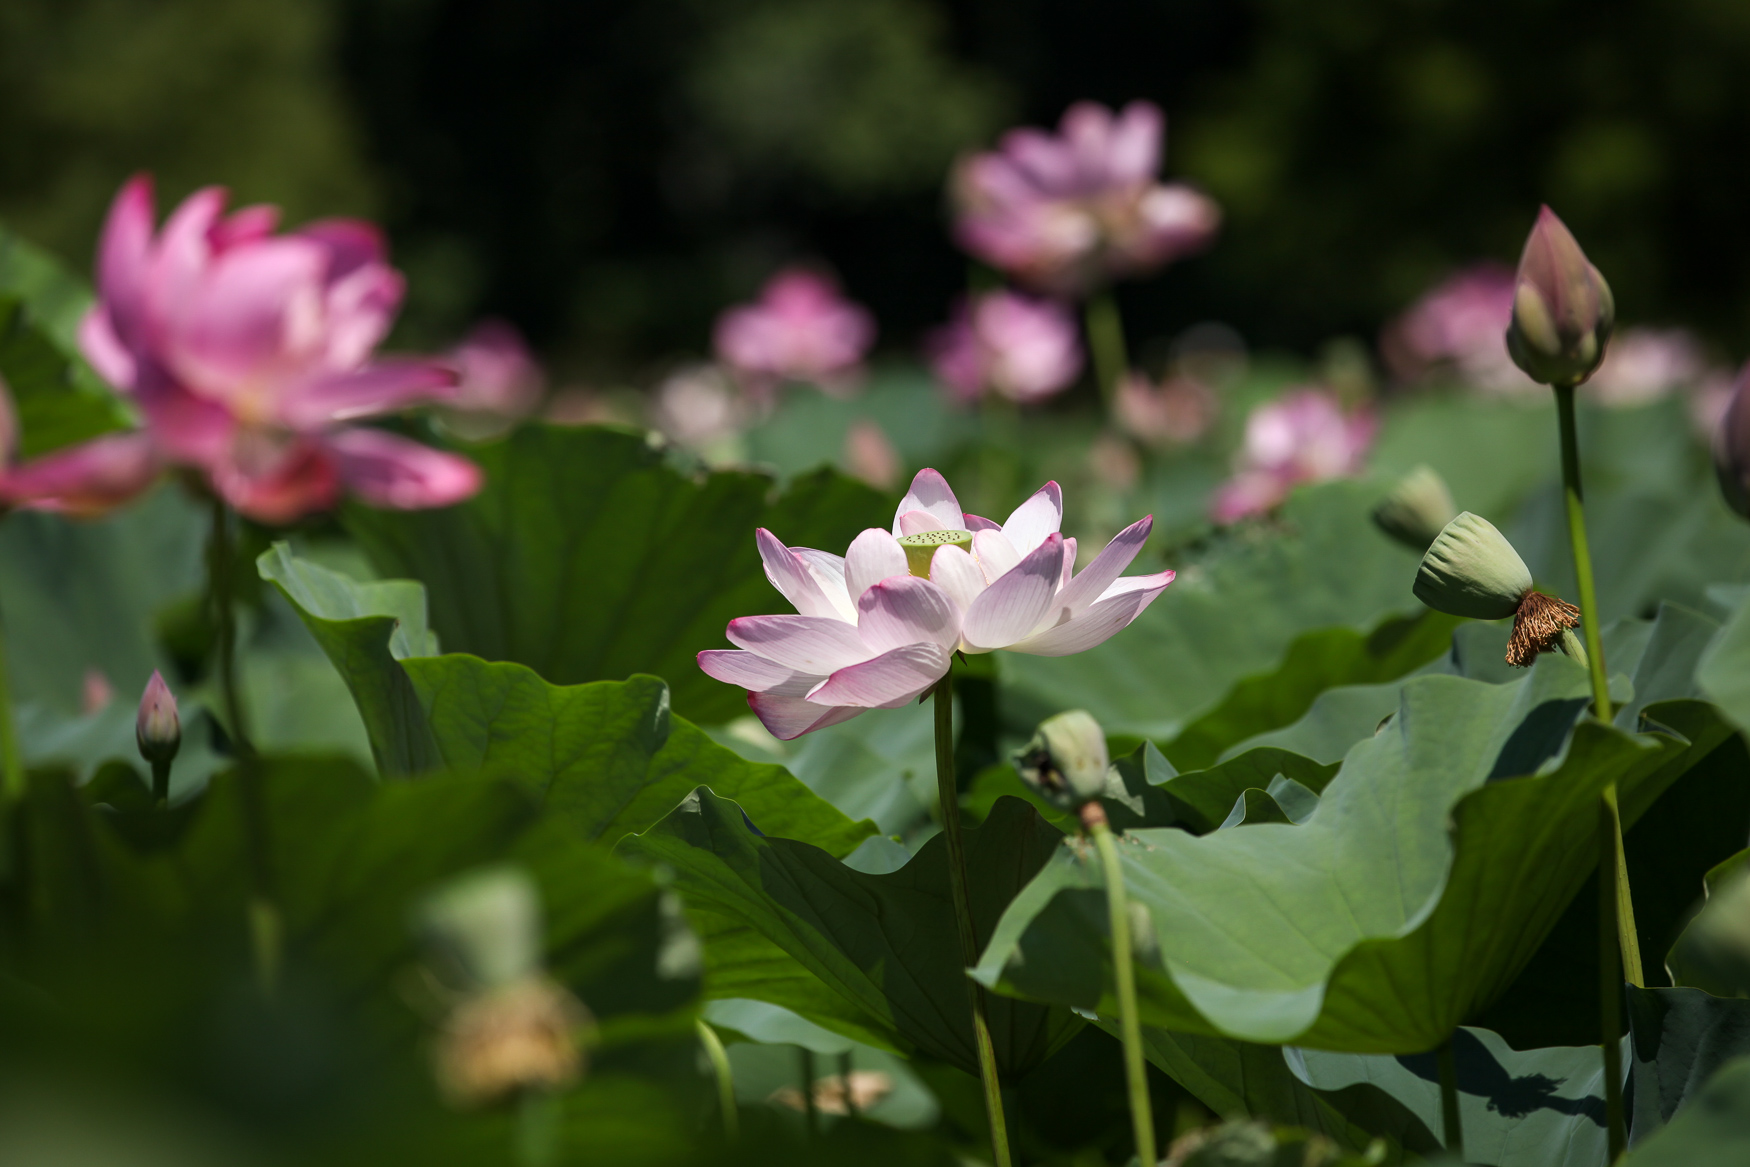 The lotuses and lilies of the Kenilworth Park and Aquatic Gardens are in bloom right now, making it the best time to visit this Anacostia gem. Although the park will hold its annual Lotus and Water Lily Festival between July 21-22, the lotuses have started unfurling their petals. Although the festival will include entertainment, right now the gardens are fairly quiet and filled with stunning blooms, dragonflies and bumble bees. (Amanda Andrade-Rhoades/DC Refined)